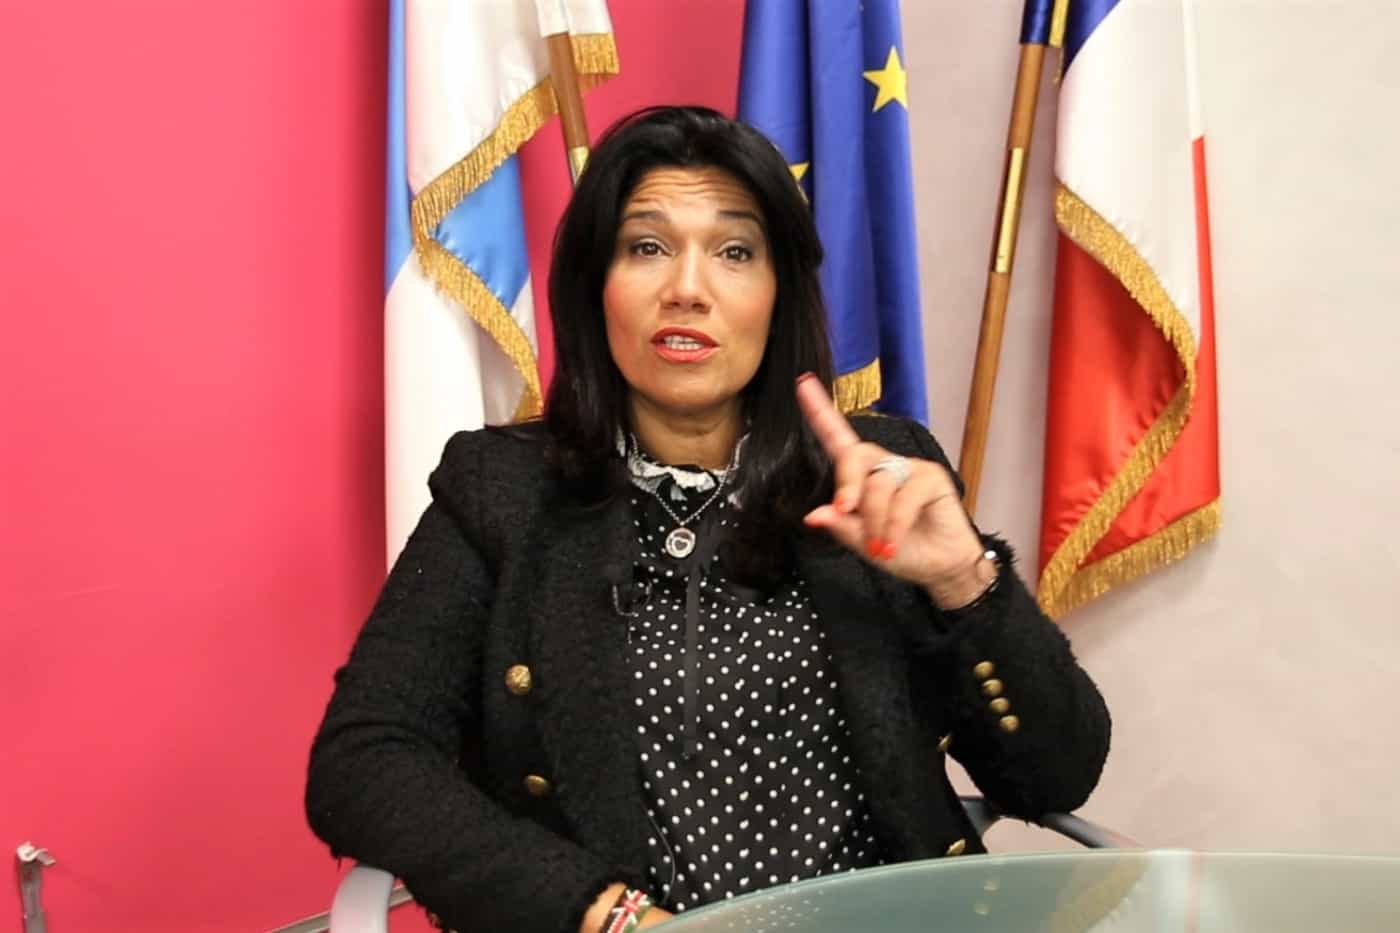 , Samia Ghali en route pour les municipales de 2020 ?, Made in Marseille, Made in Marseille